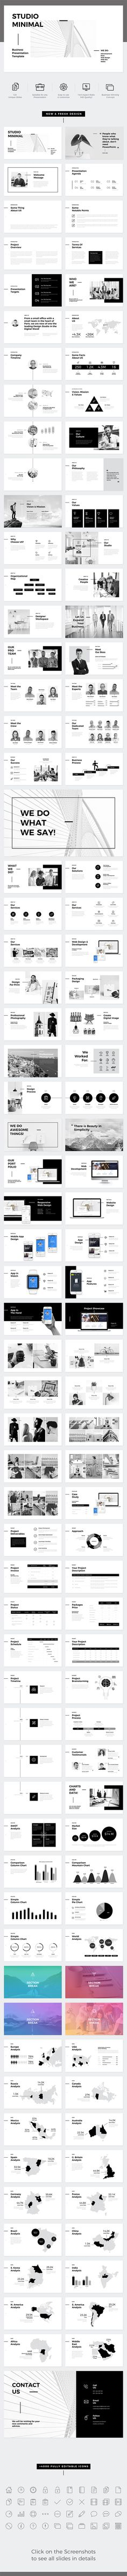 Studio Minimal Presentation Google Slides Template - Google Slides Presentation Templates